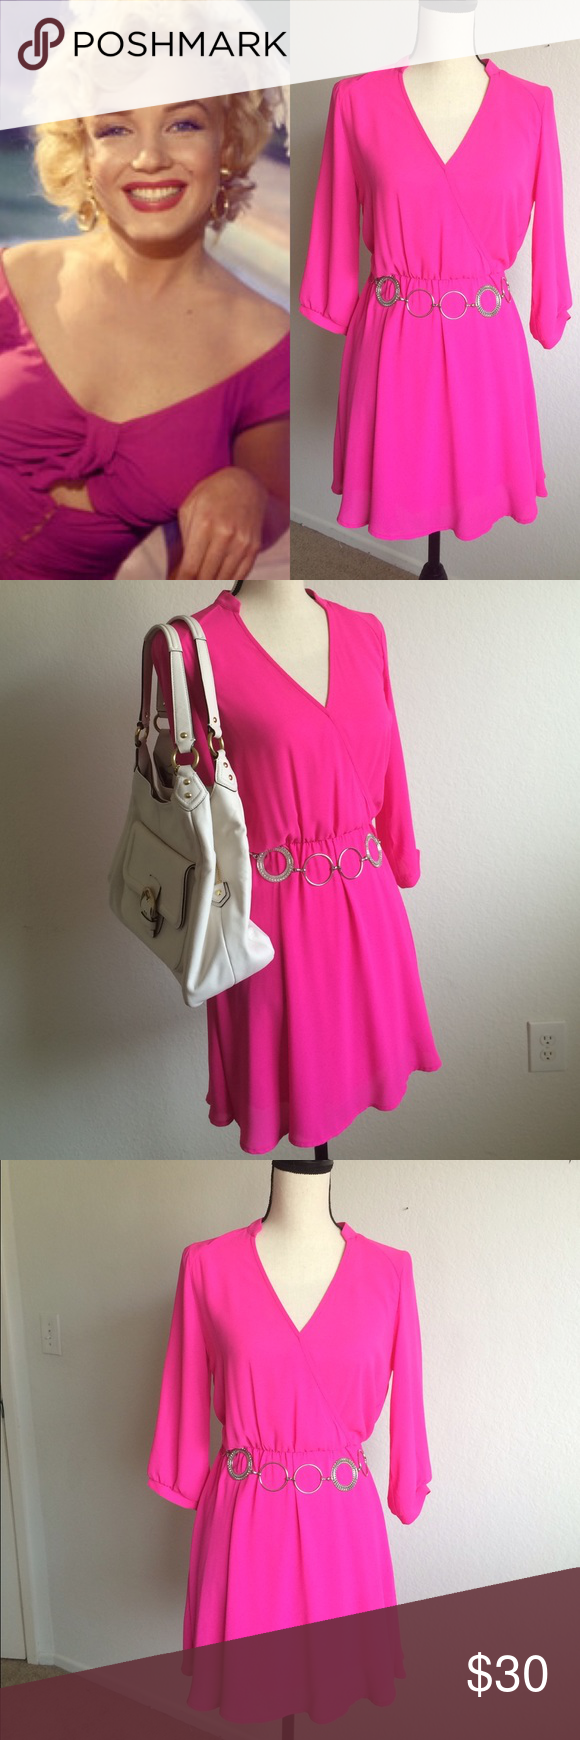 ⚜dress This item is a simple elegant hot pink dress with long sleeve. You can wear in many party events and occasions. Dresses